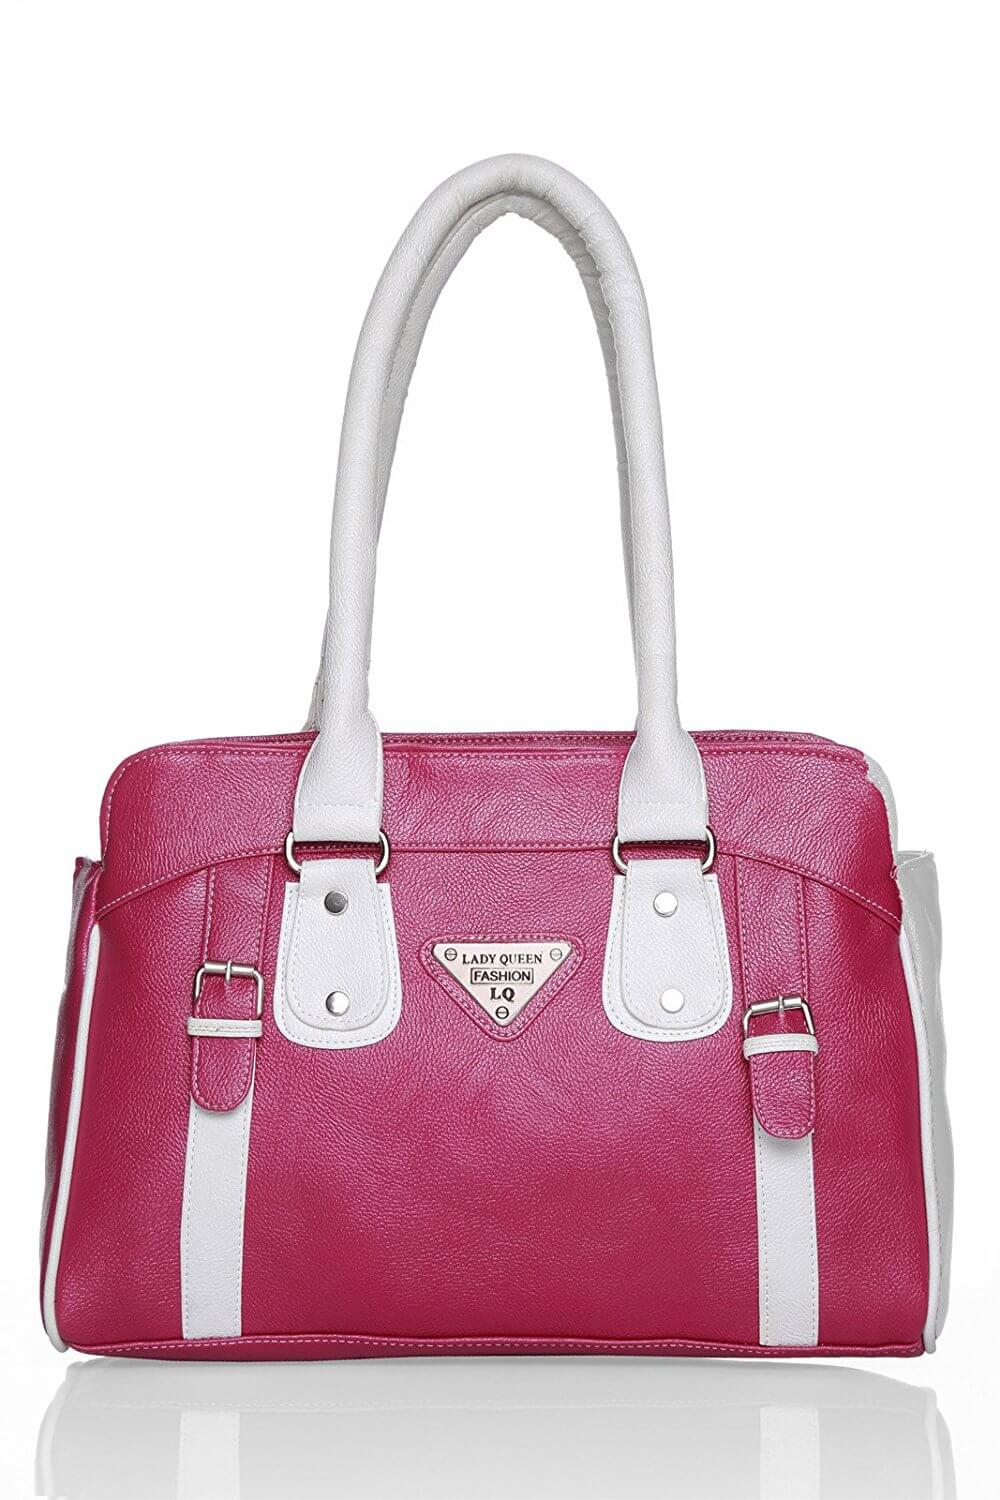 Lady queen casual bag LD - 329